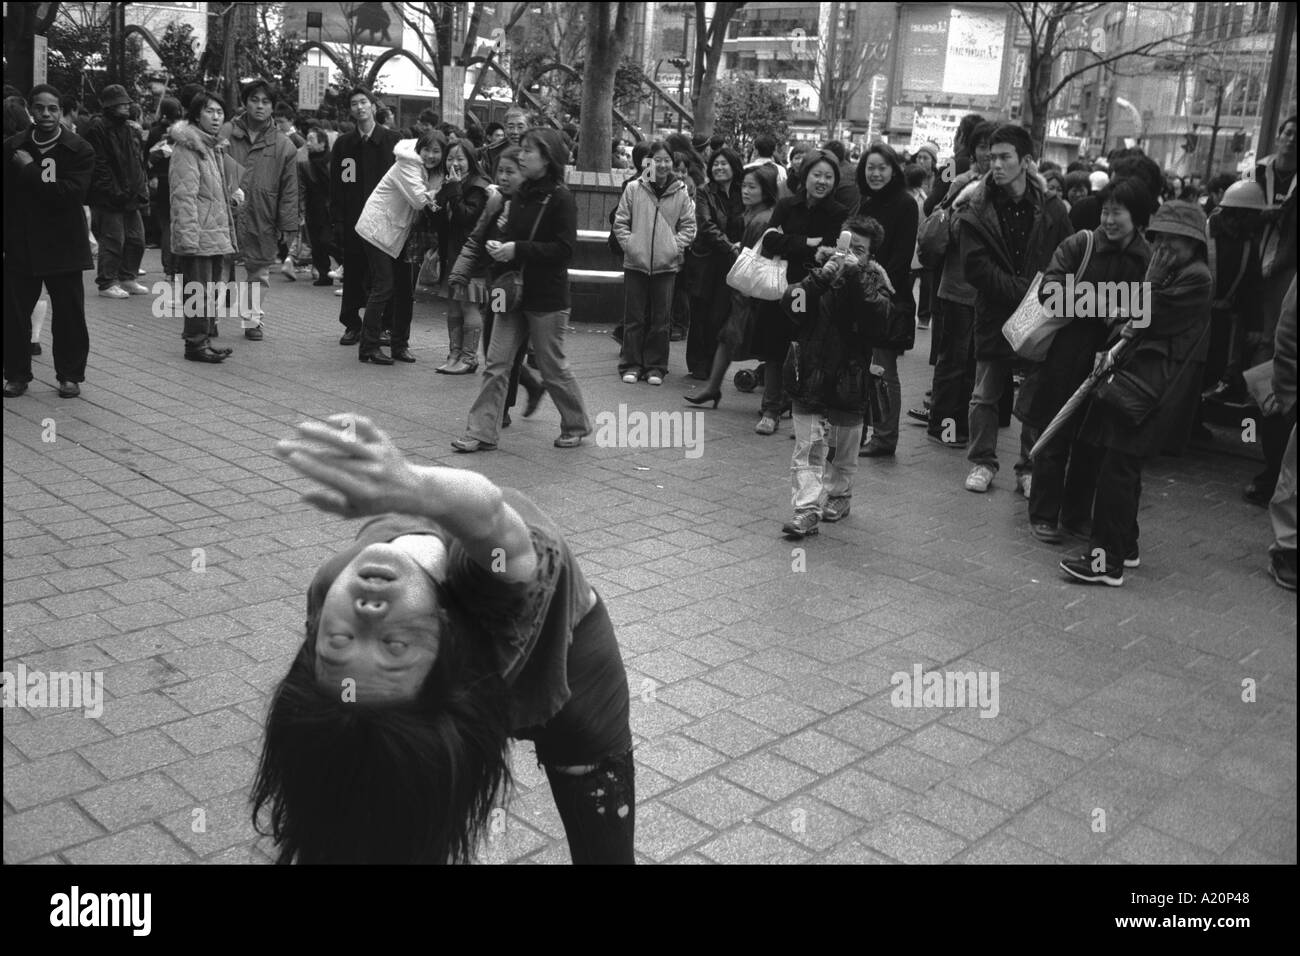 A woman dances as if possessed to the amusement and bewilderment of passerbys outside Shibuya train station, Tokyo, japan - Stock Image